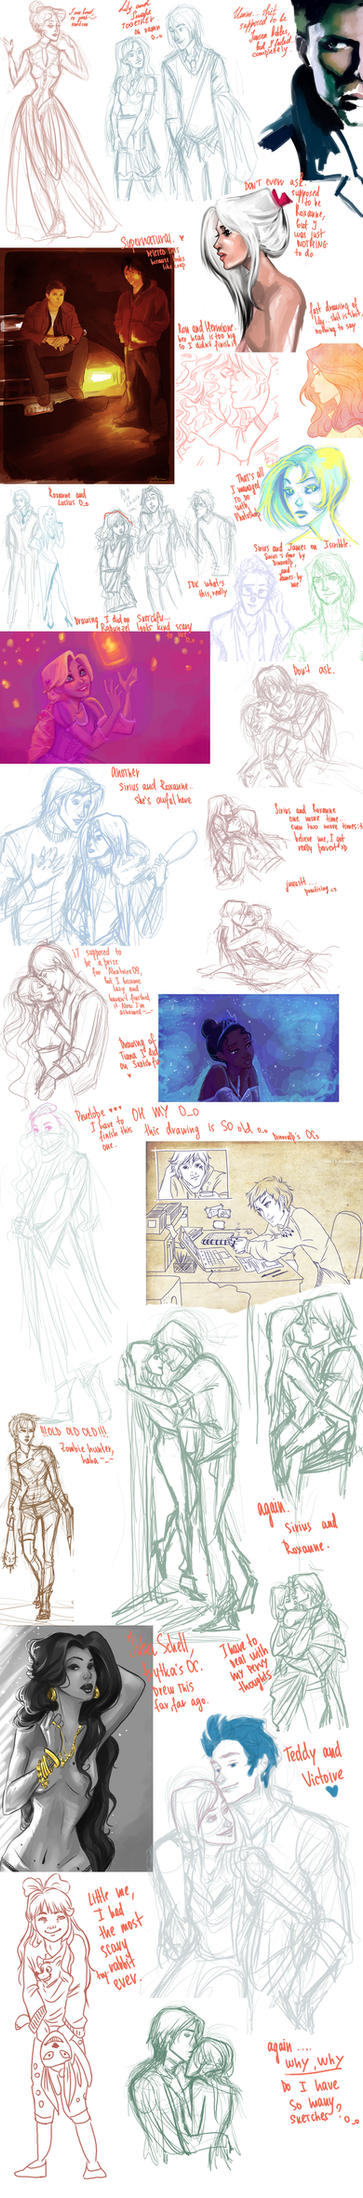 another sketch DUMP. by viria13